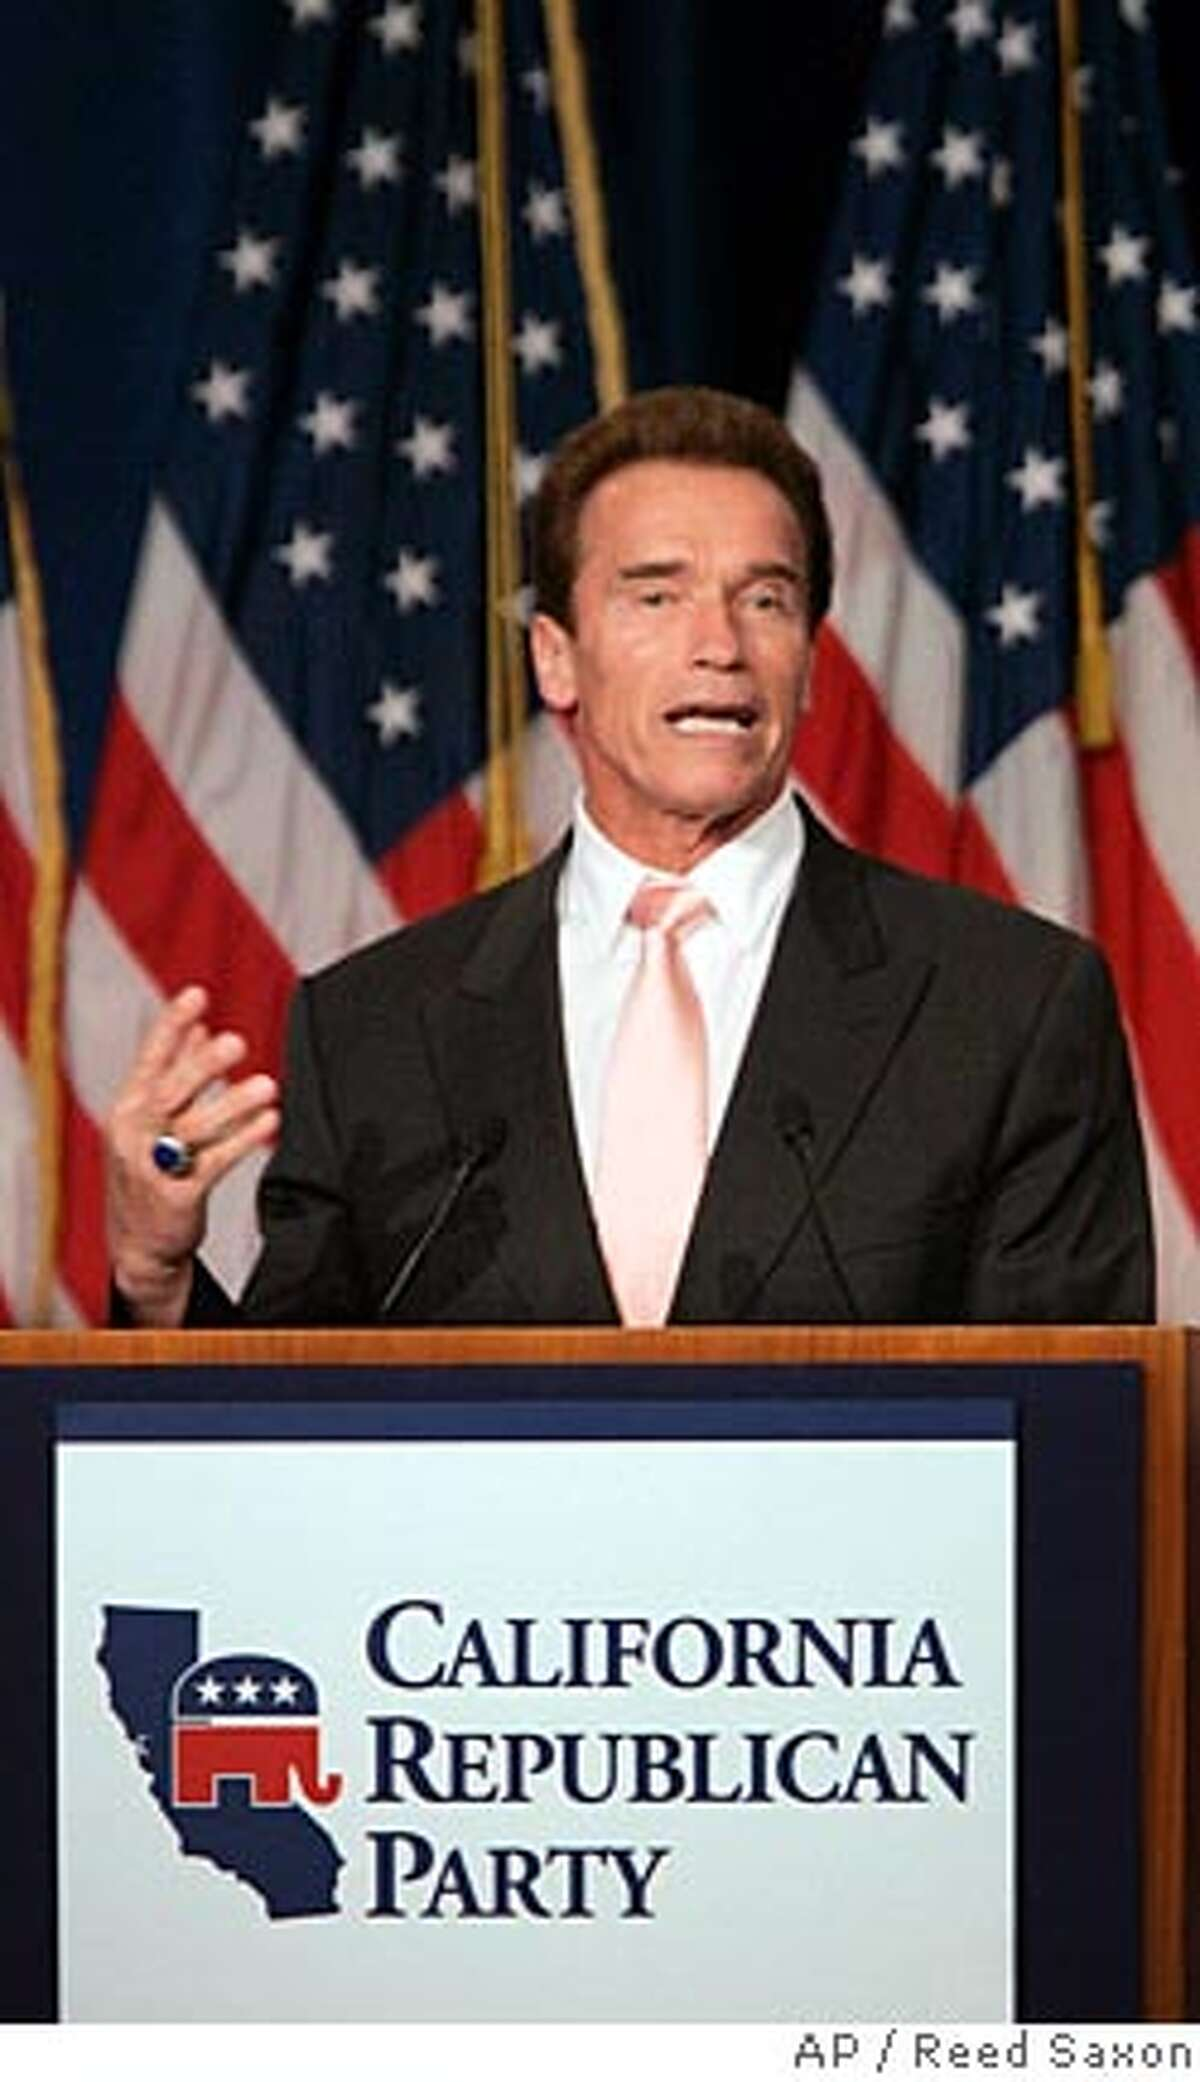 California Gov. Arnold Schwarzenegger speaks at the California Republican Party convention in Indian Wells, Calif., Friday, Sept. 7, 2007. (AP Photo/Reed Saxon)